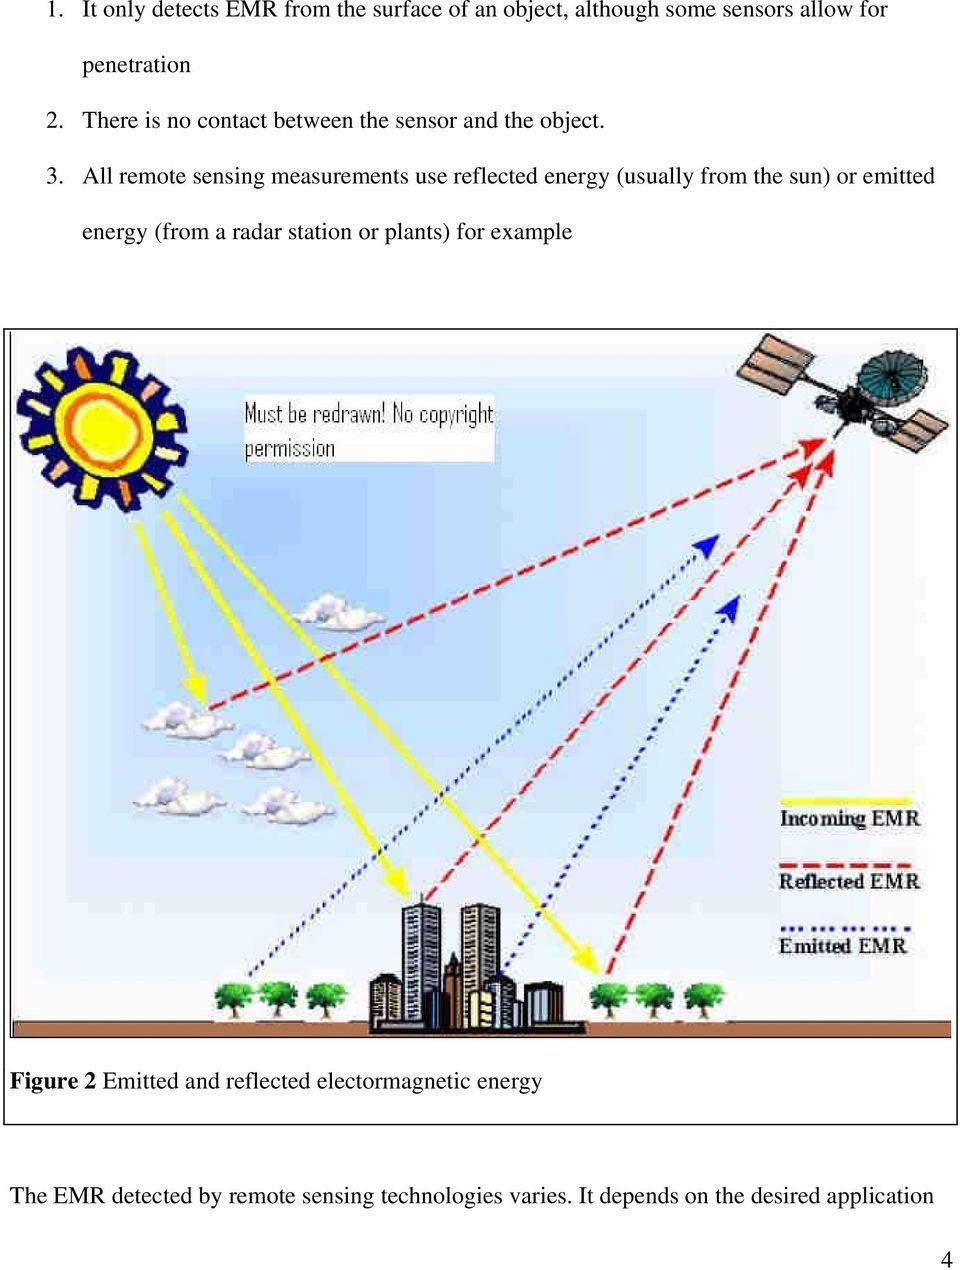 All remote sensing measurements use reflected energy (usually from the sun) or emitted energy (from a radar